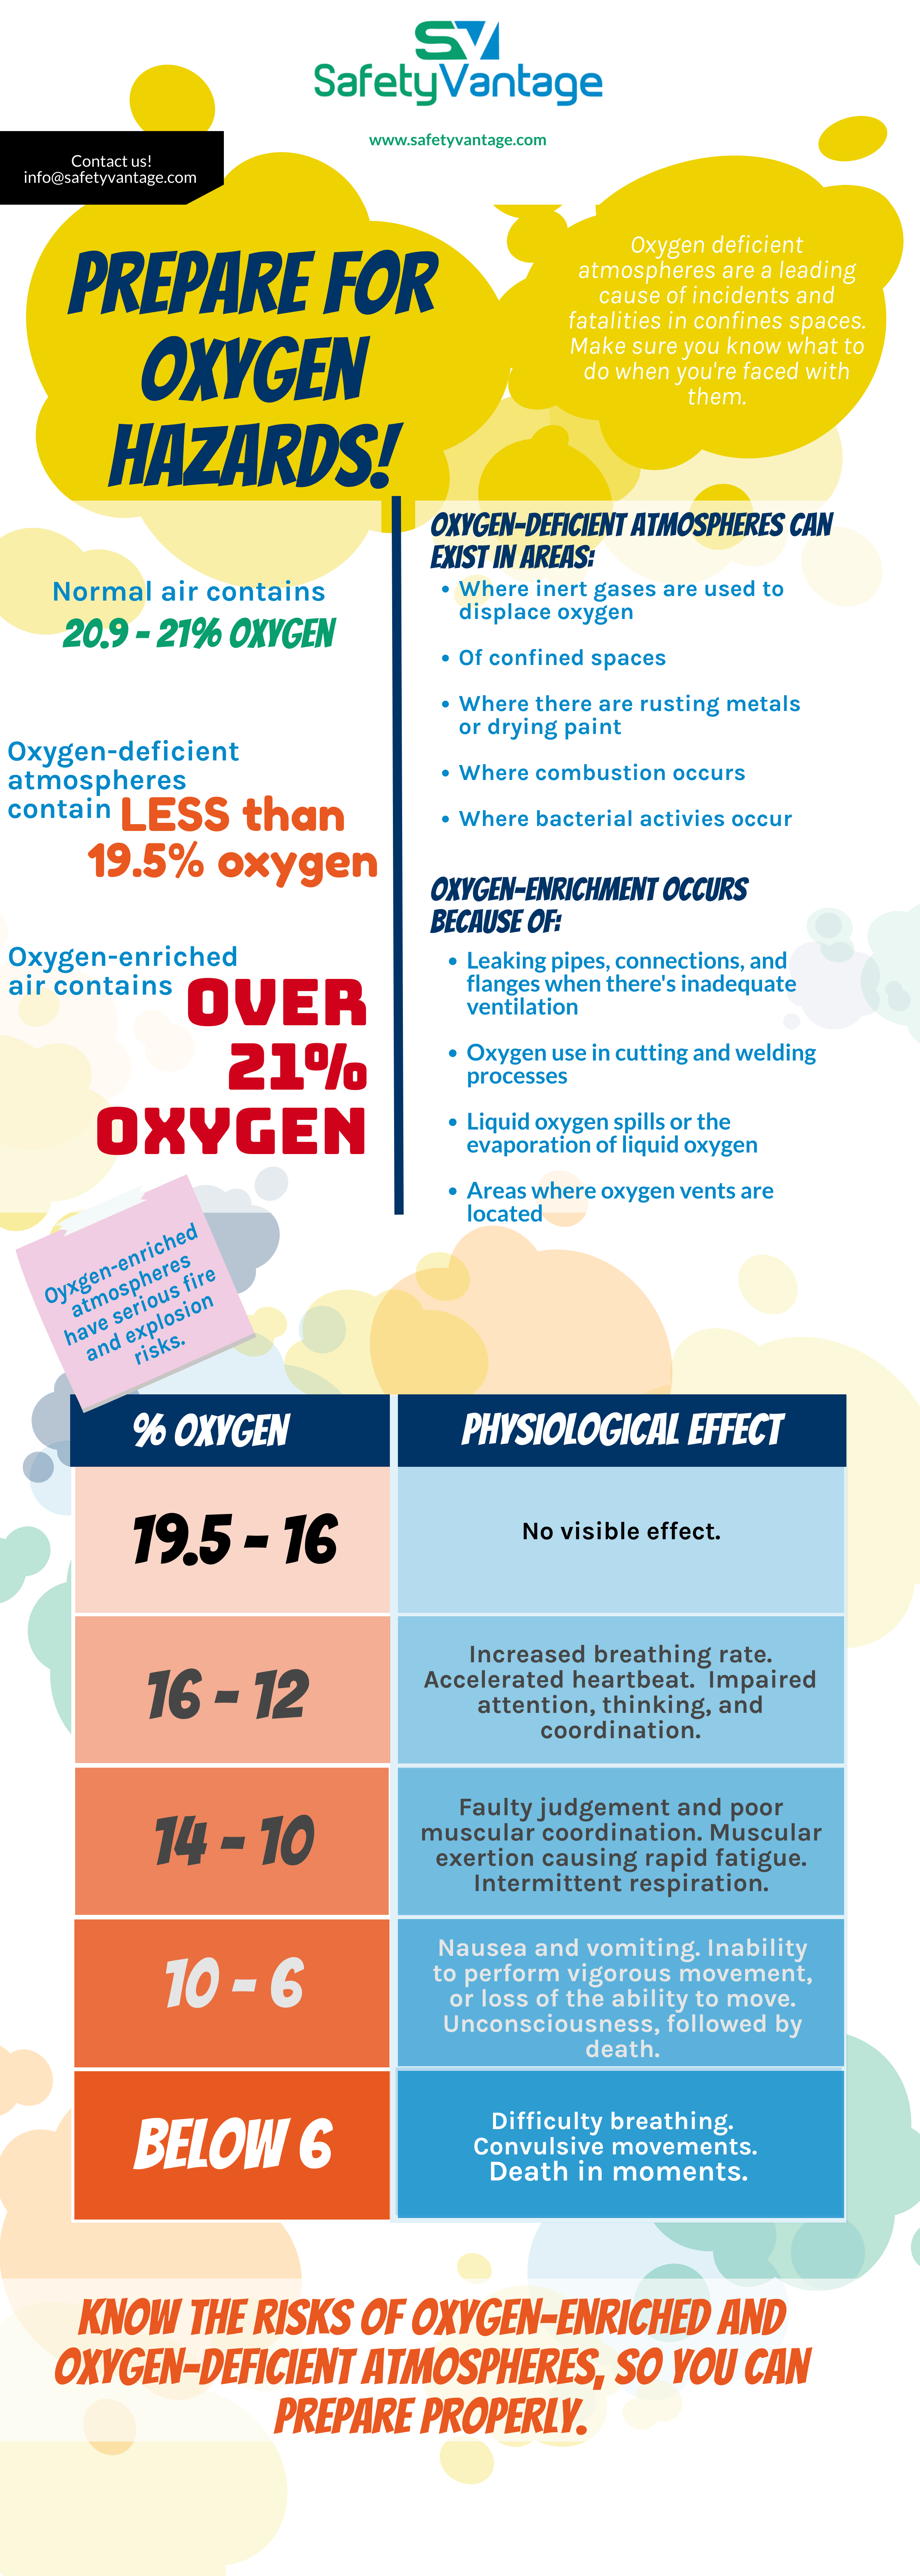 InfoGraphic: Oxygen deficient atmospheres are a leading cause of incidents and fatalities in confined spaces. Ensure you can face them safely.